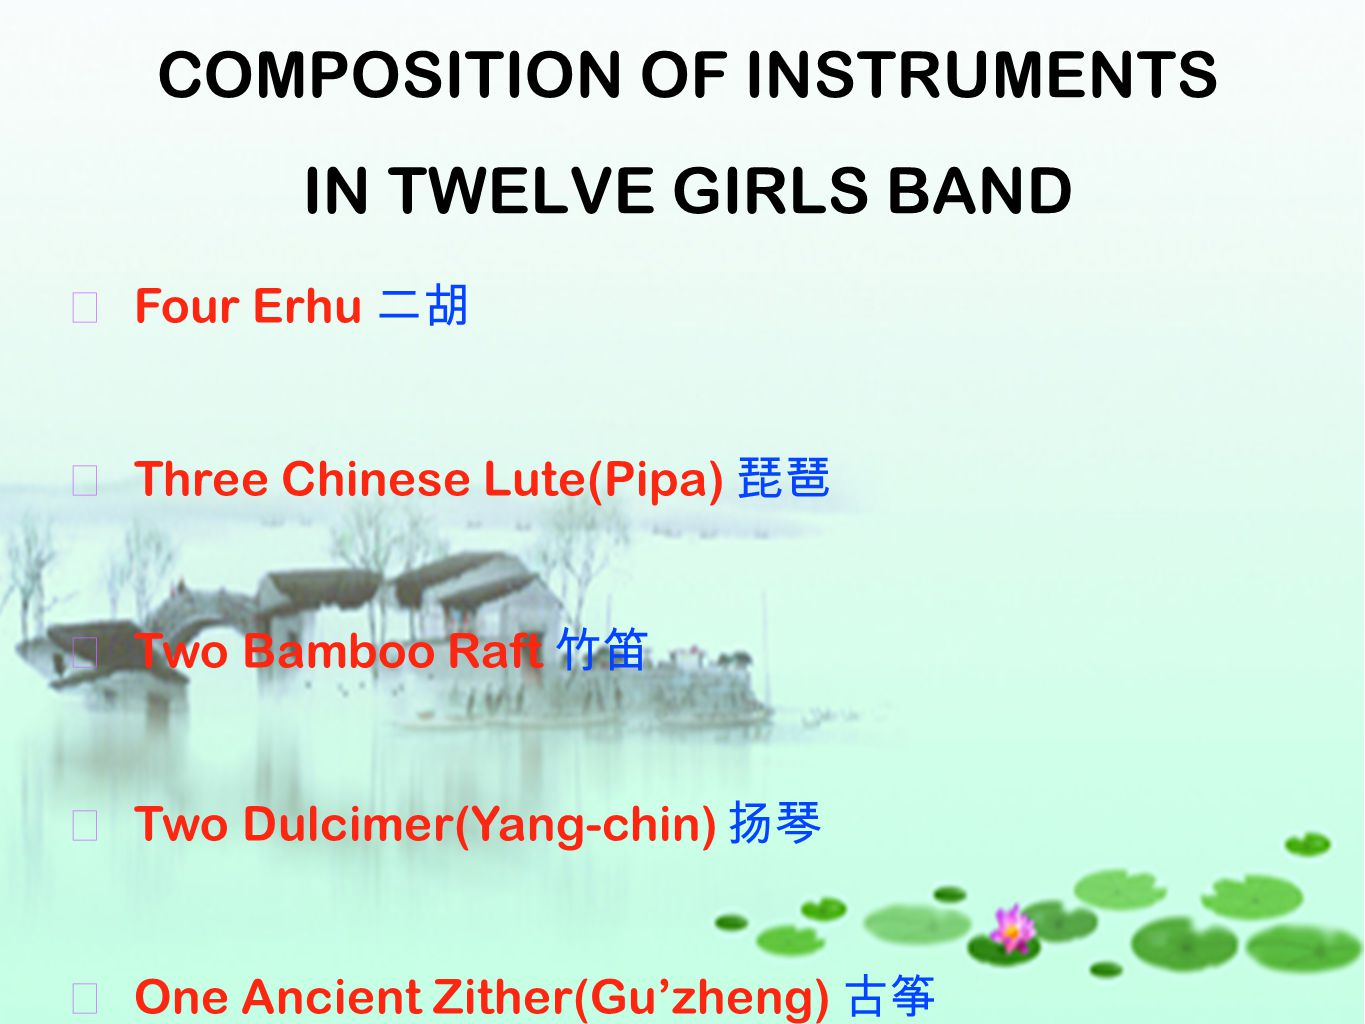 COMPOSITION OF INSTRUMENTS IN TWELVE GIRLS BAND